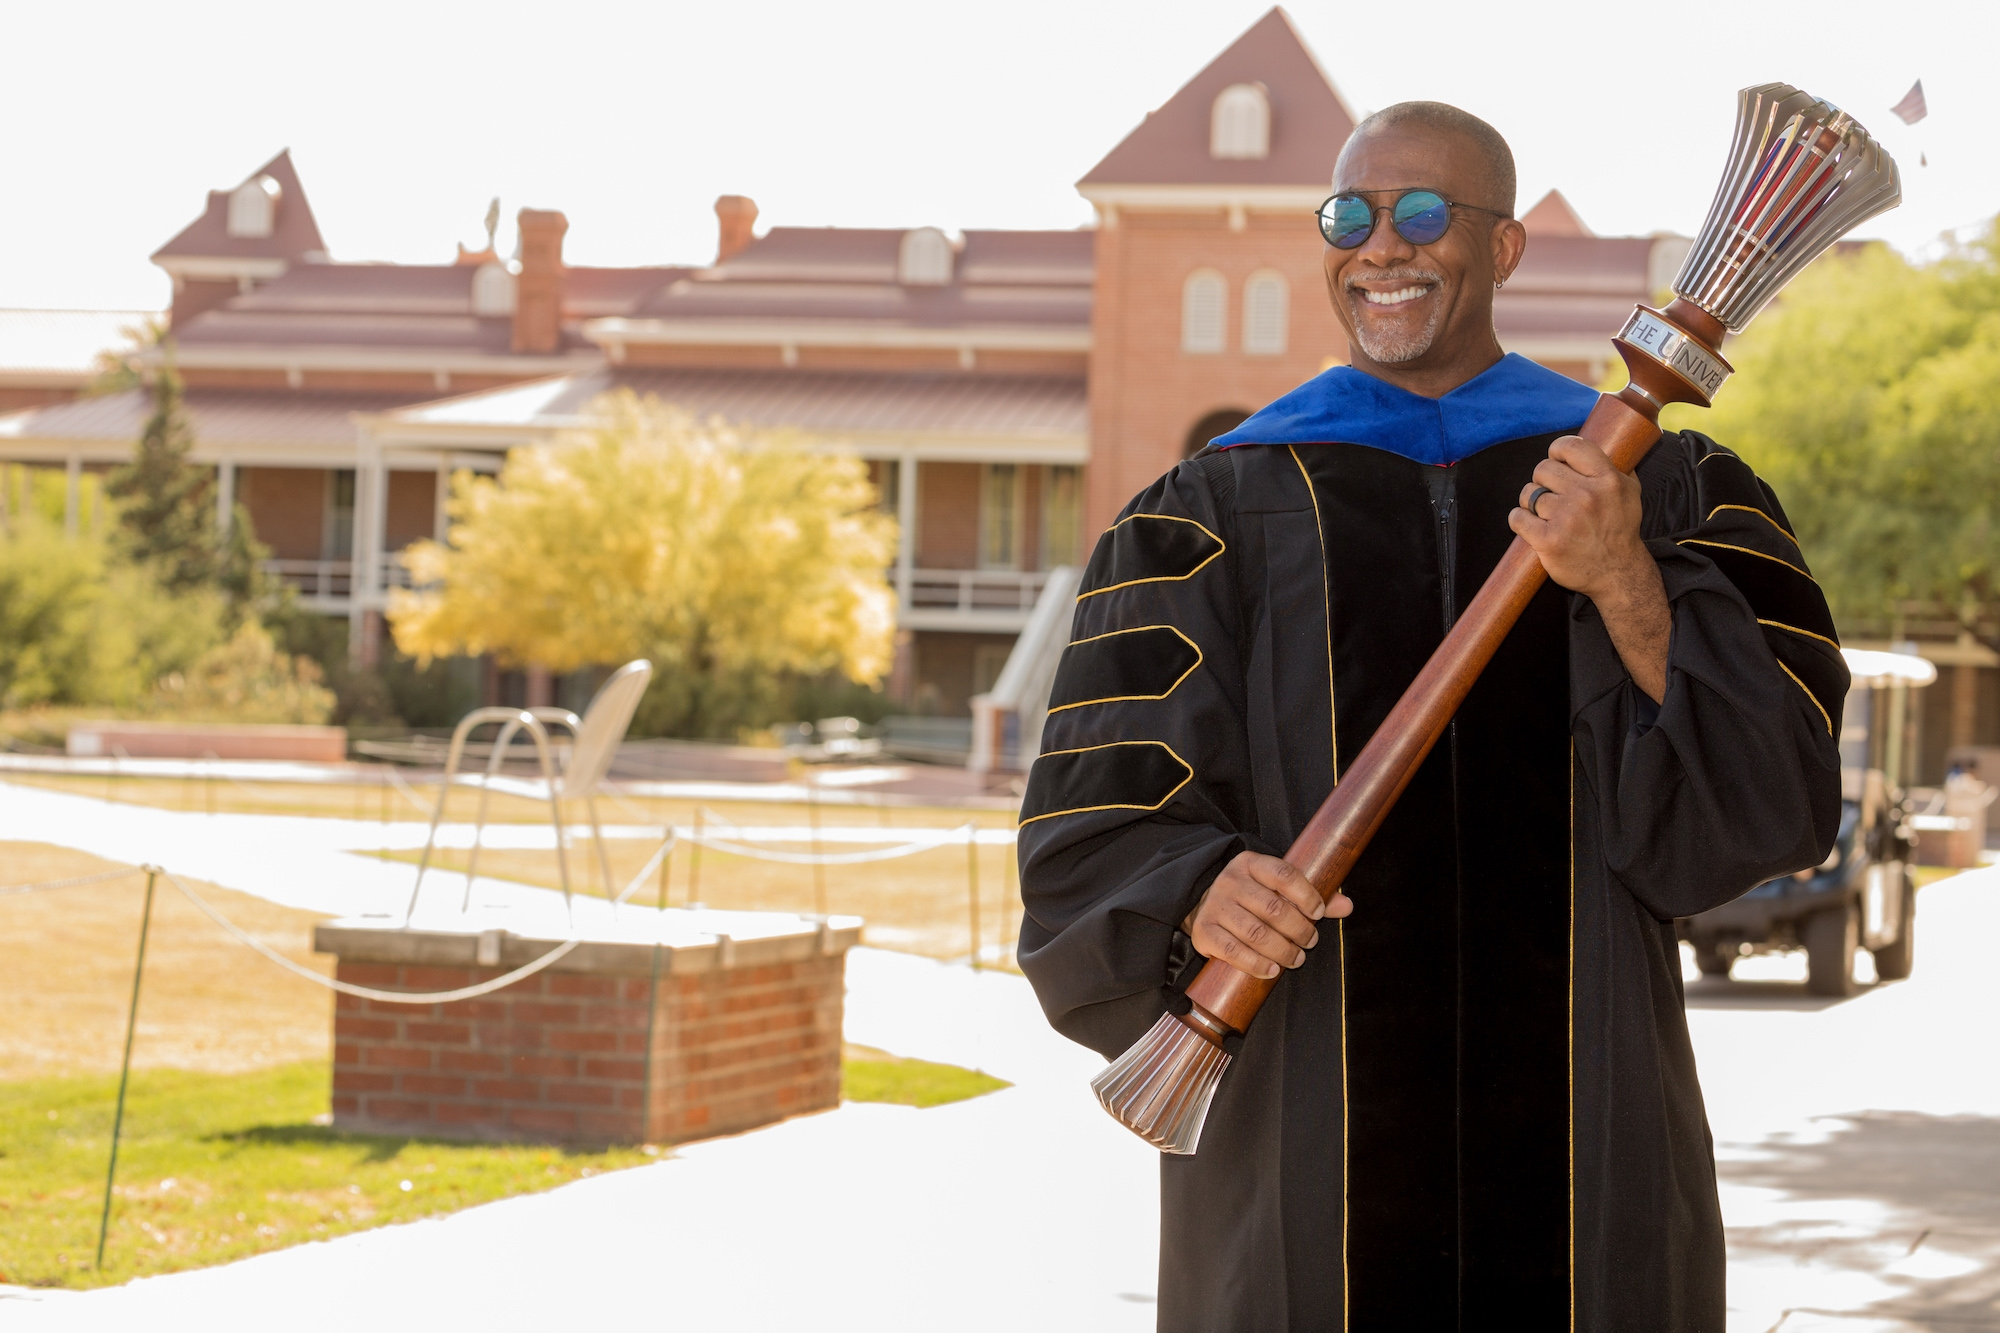 Bryan Carter, associate professor of Africana studies and director of the UArizona Center for Digital Humanities, poses with the university's ceremonial mace during filming for the virtual 2020 Commencement.